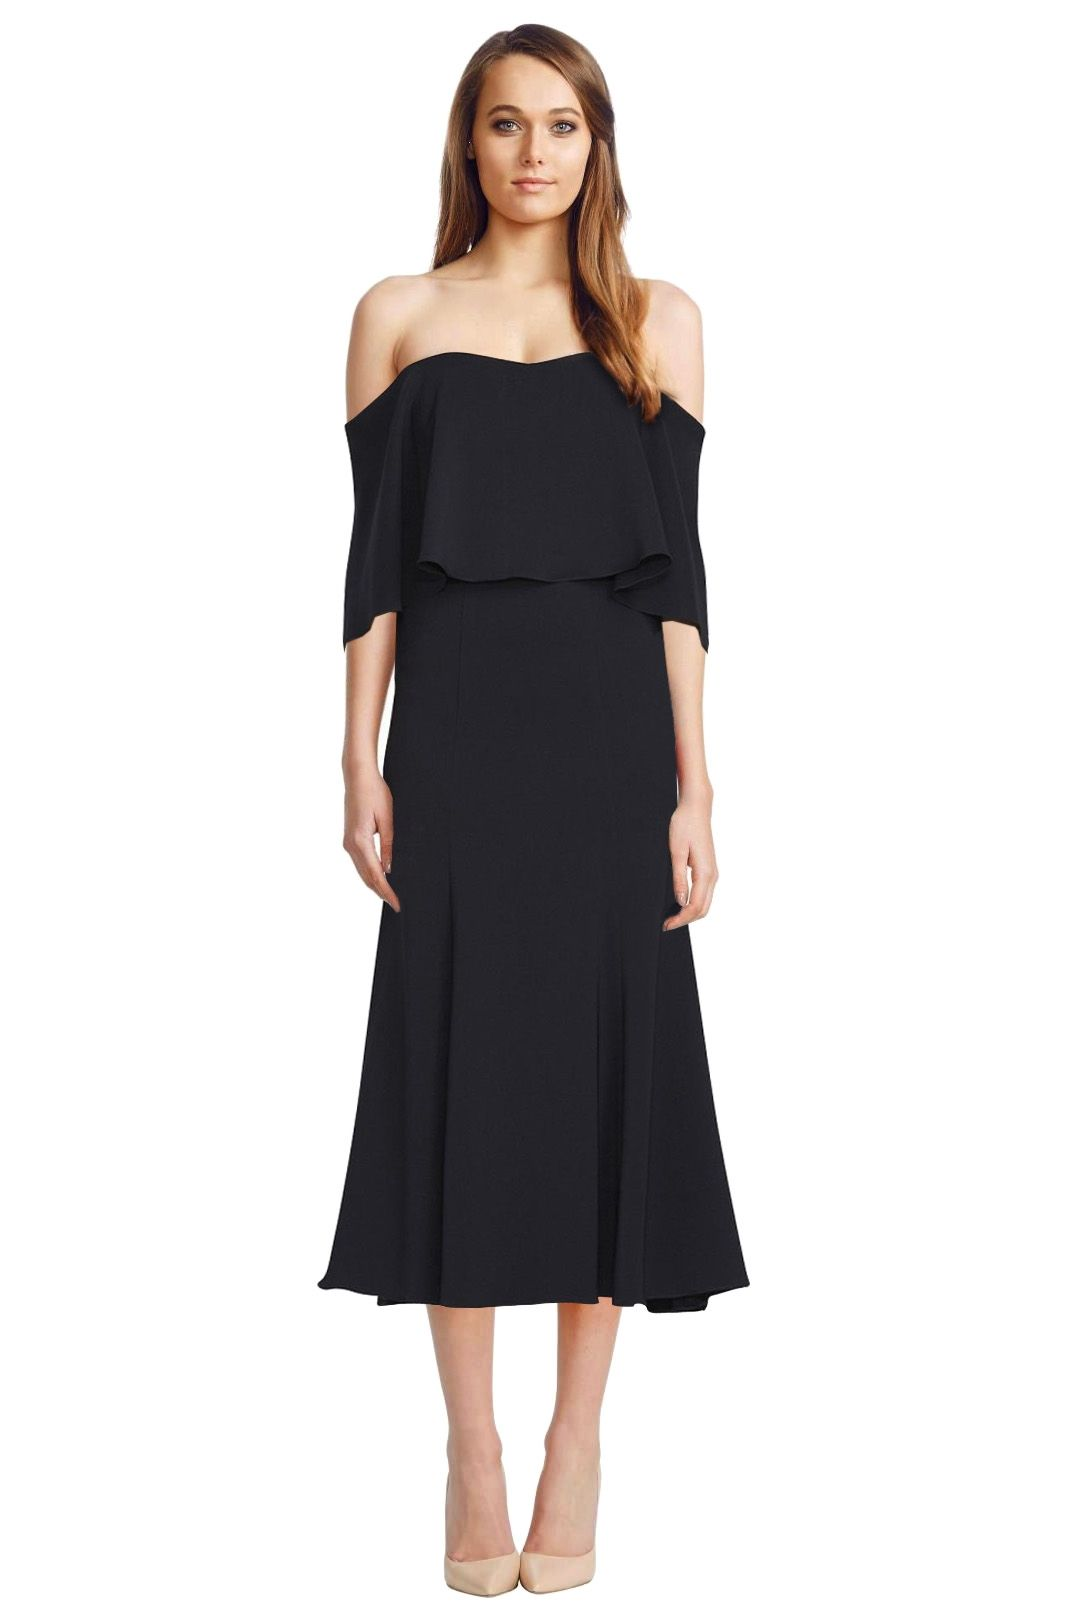 Camilla and Marc - Bridal Off Shoulder Dress - Black - Front